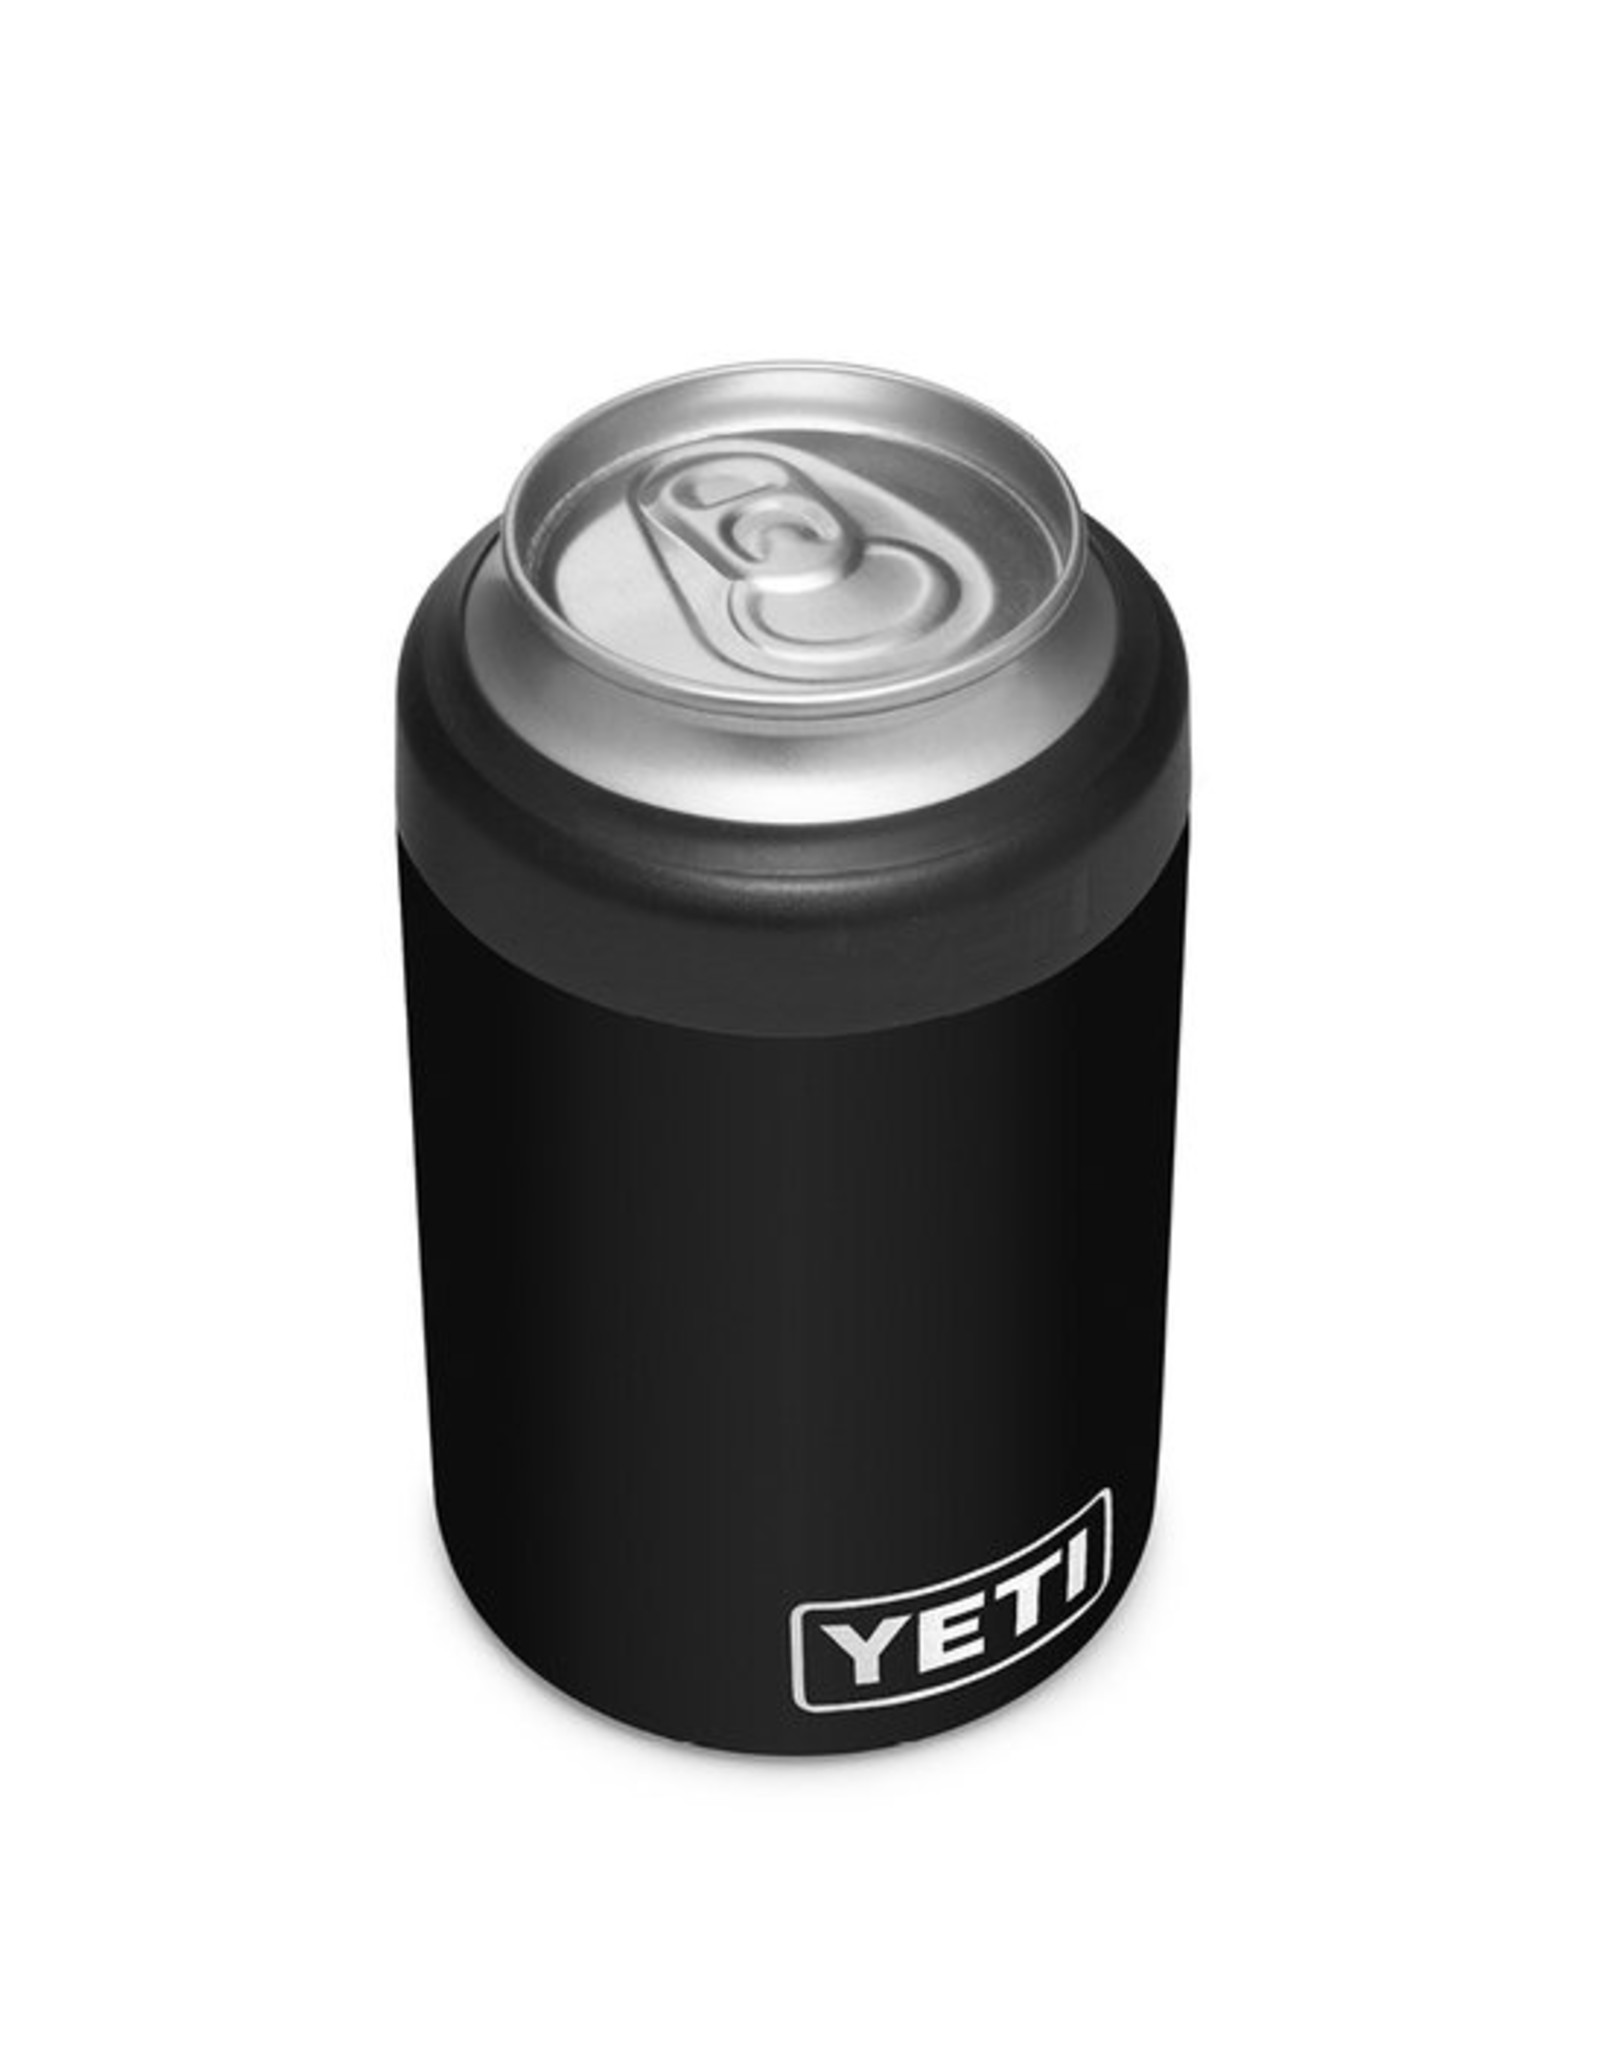 YETI Coolers Colster 2.0 - Black